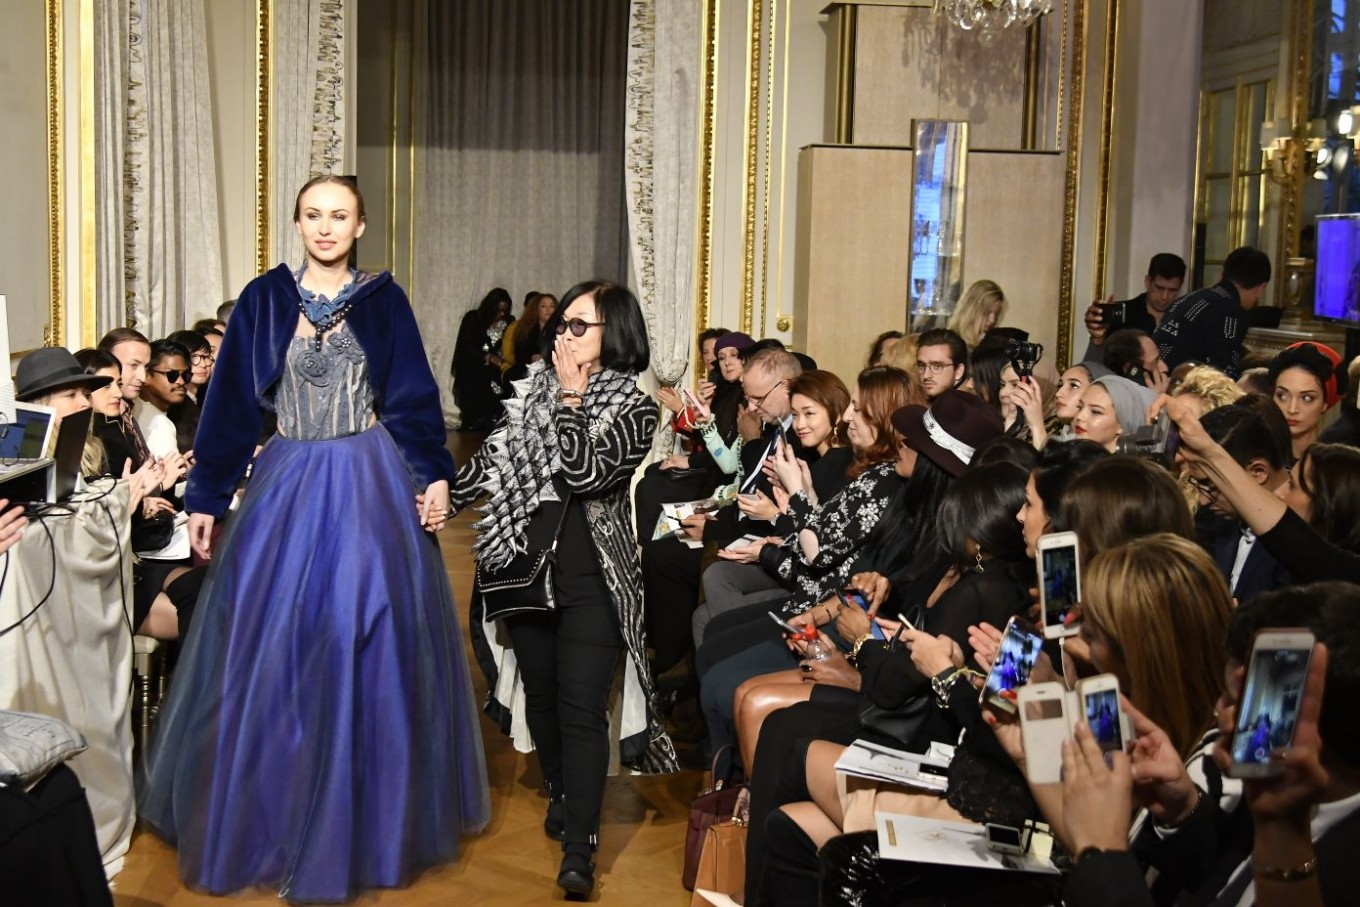 Indonesian designer Ika Butoni and one of the models presenting her creations appear at the Oriental Fashion Show in Paris on Jan. 25.